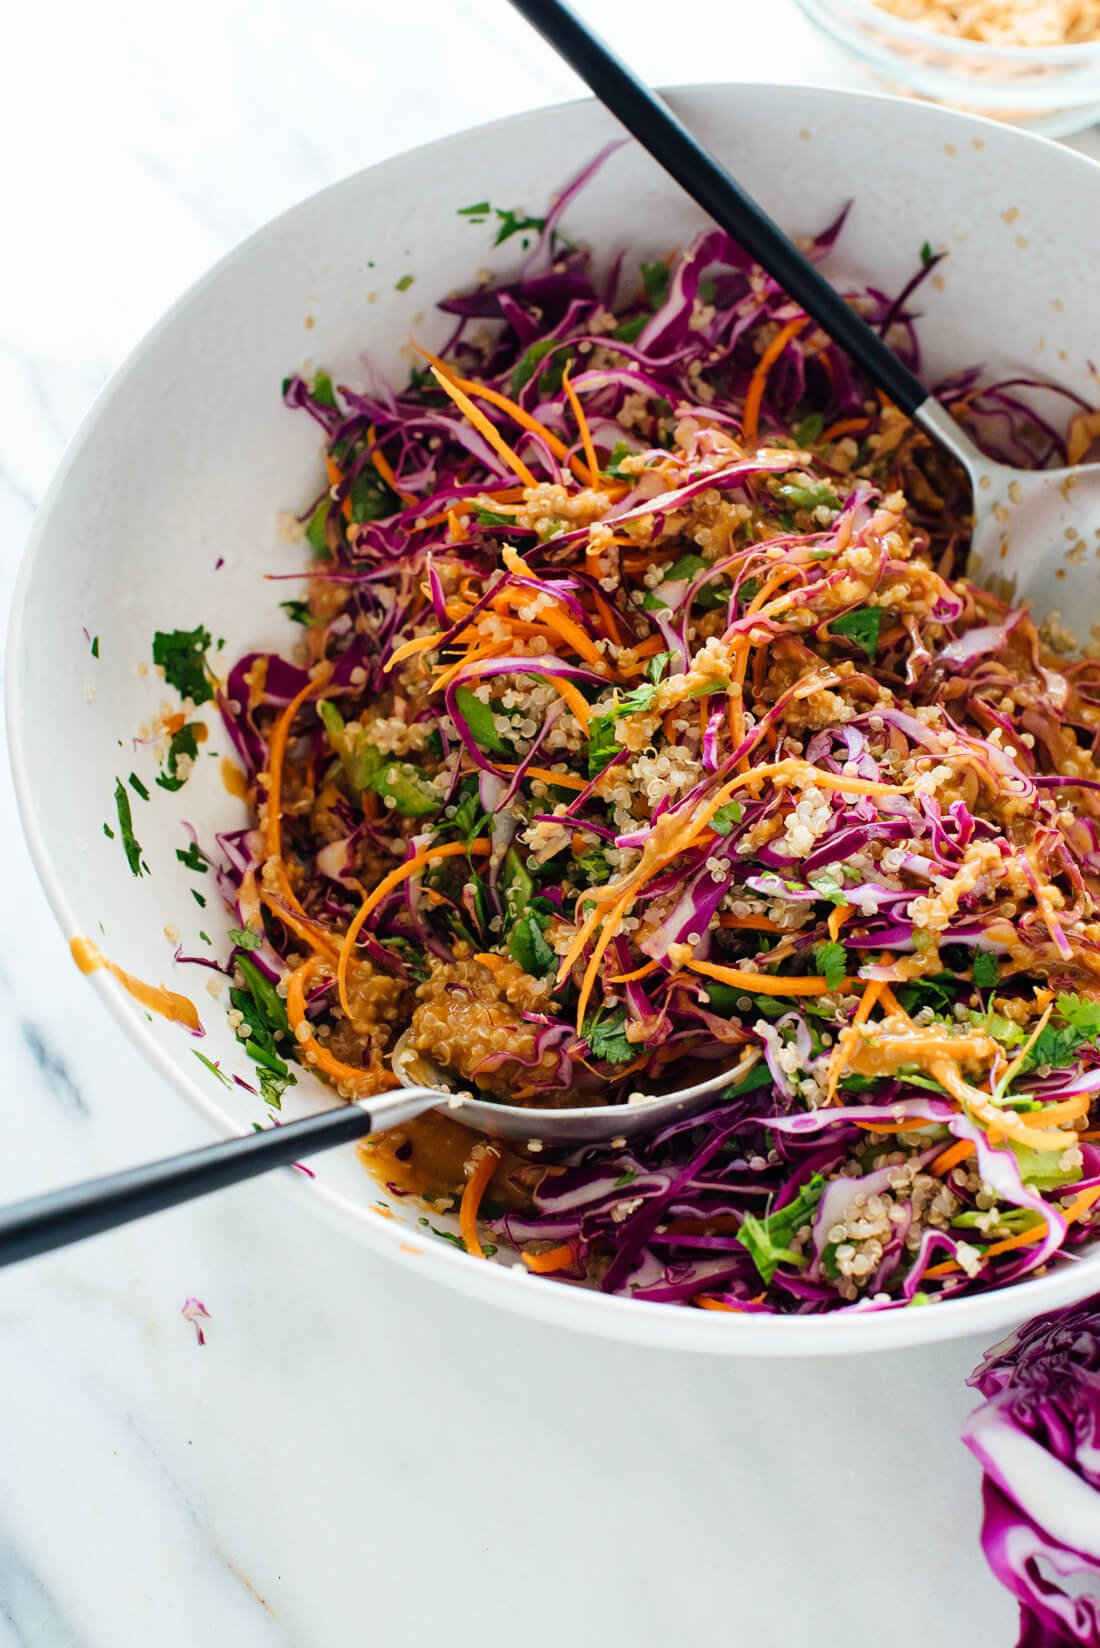 This Thai-flavored peanut quinoa salad recipe is bursting with colors and nutrients. cookieandkate.com